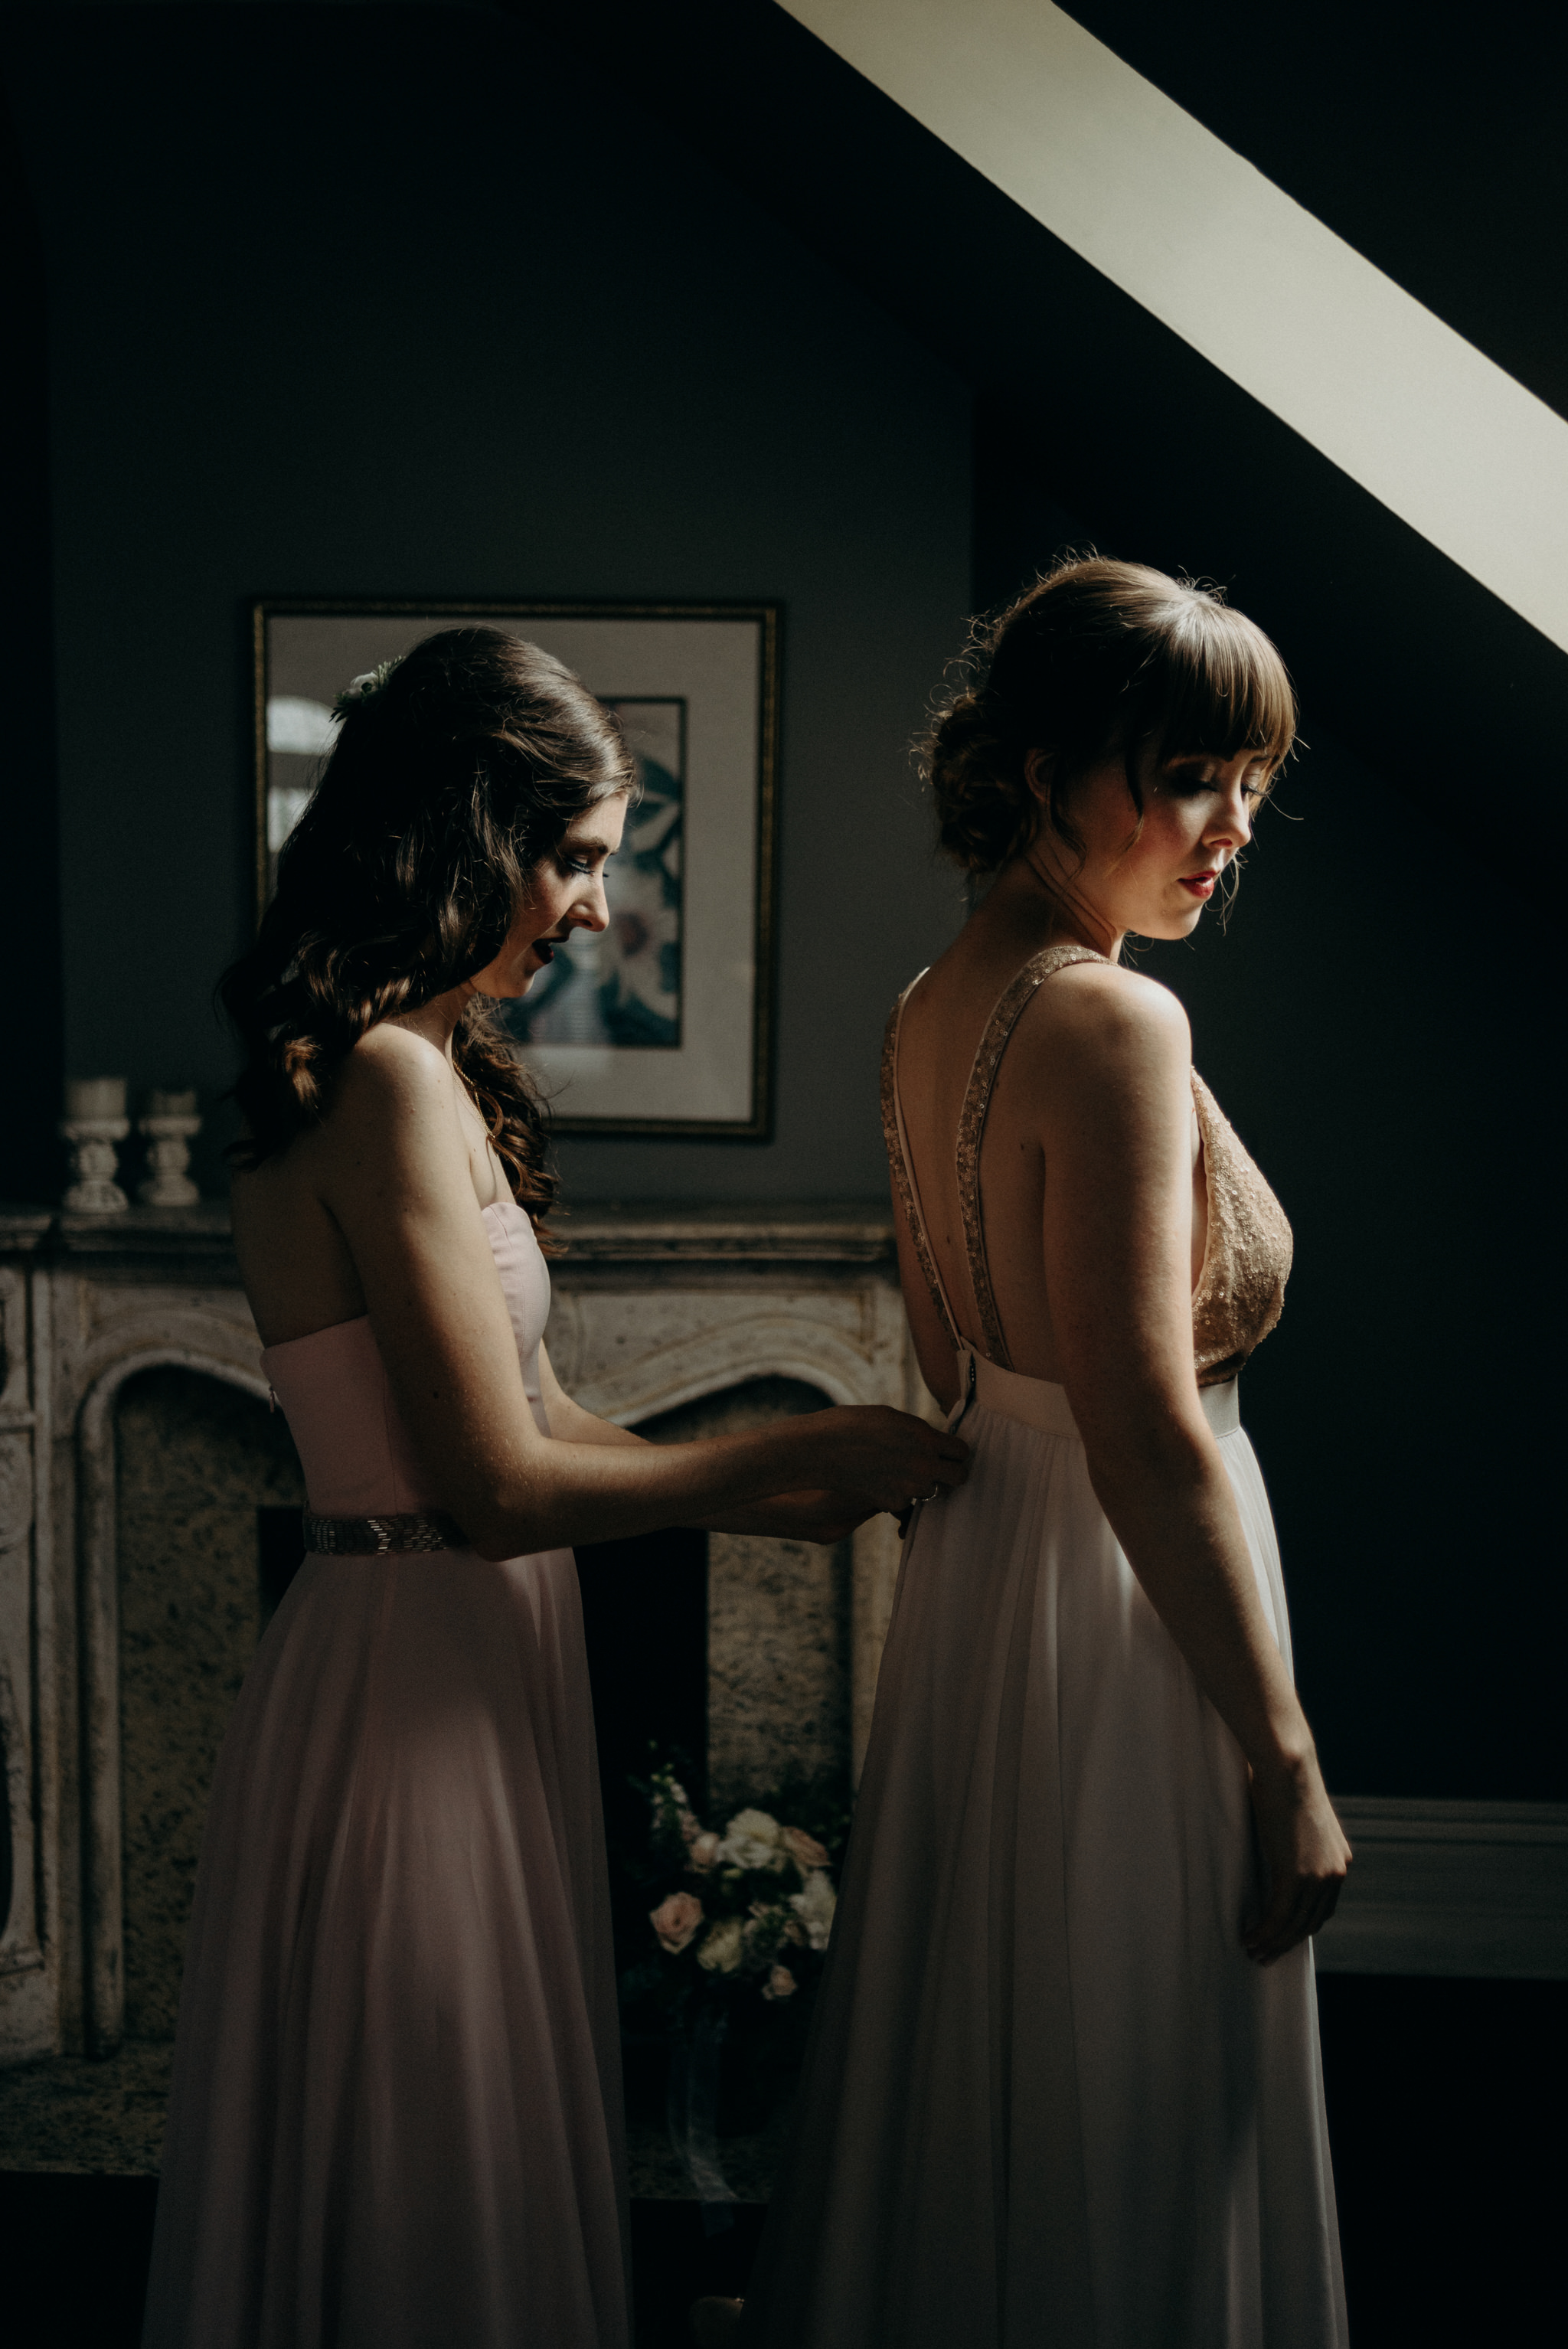 bridesmaid helping bride into dress in attic room with skylight